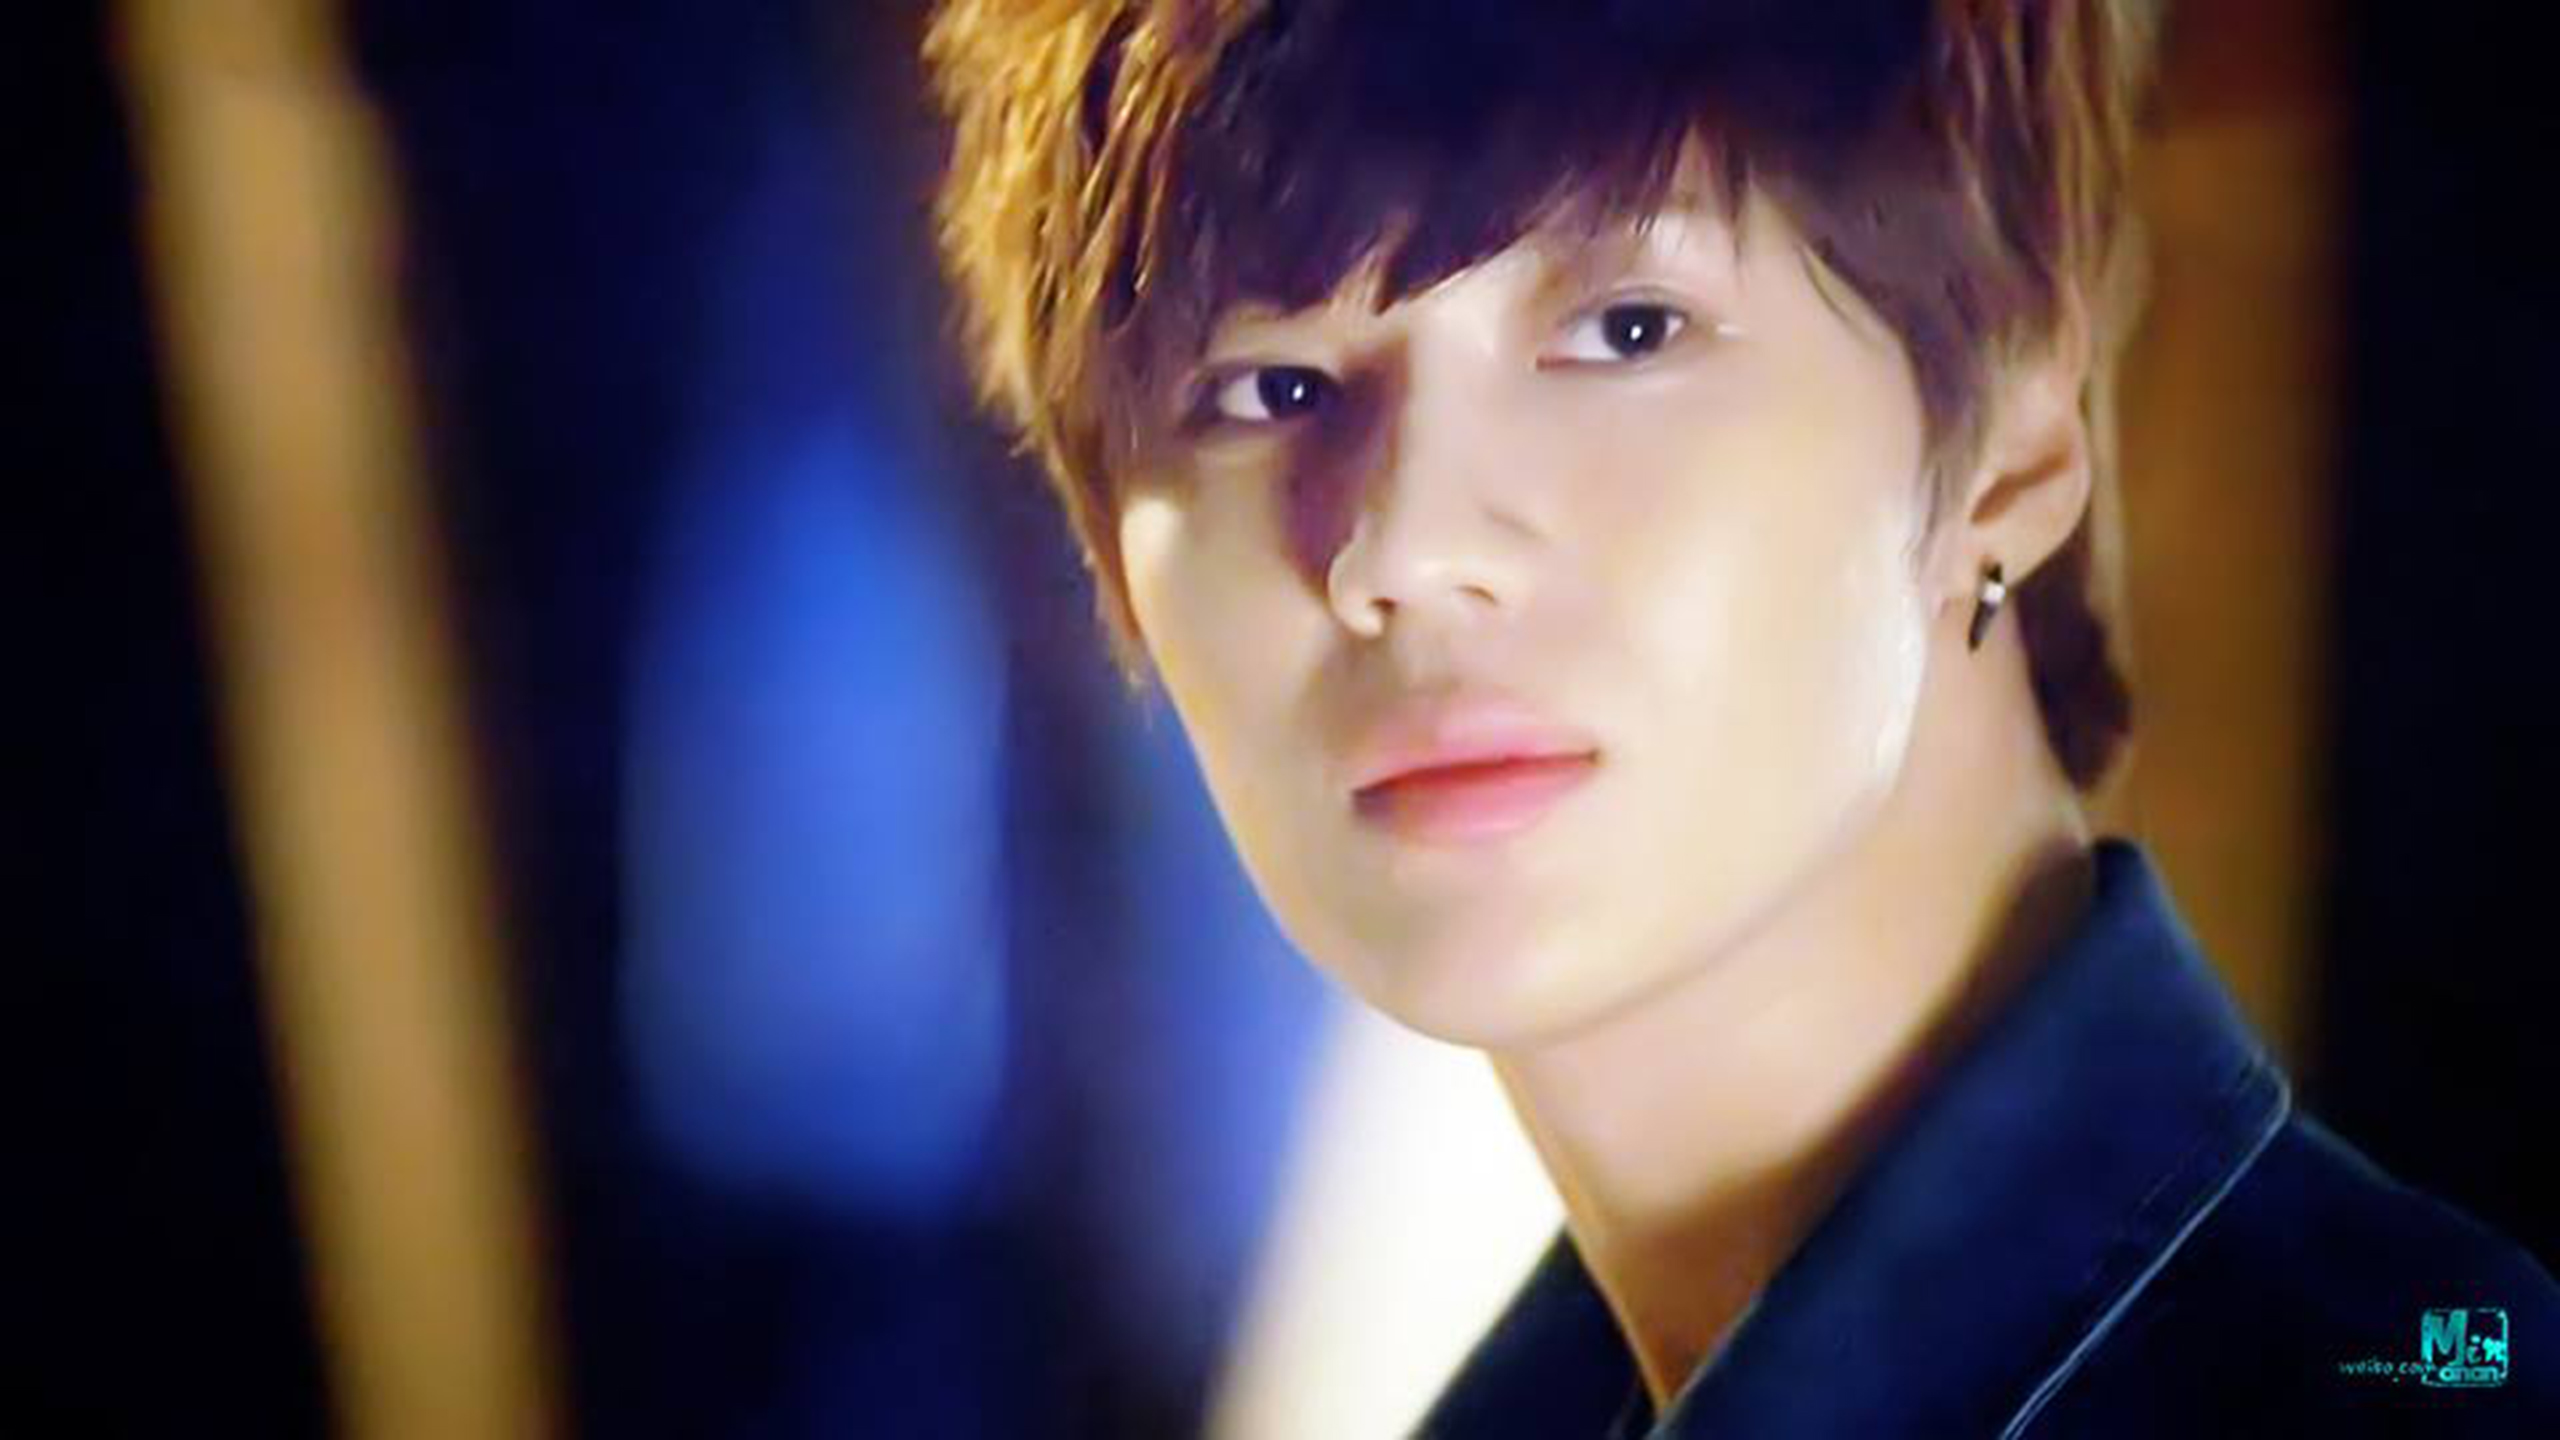 Taemin Wallpaper   Lee Taemin Wallpaper 34851362 2560x1440